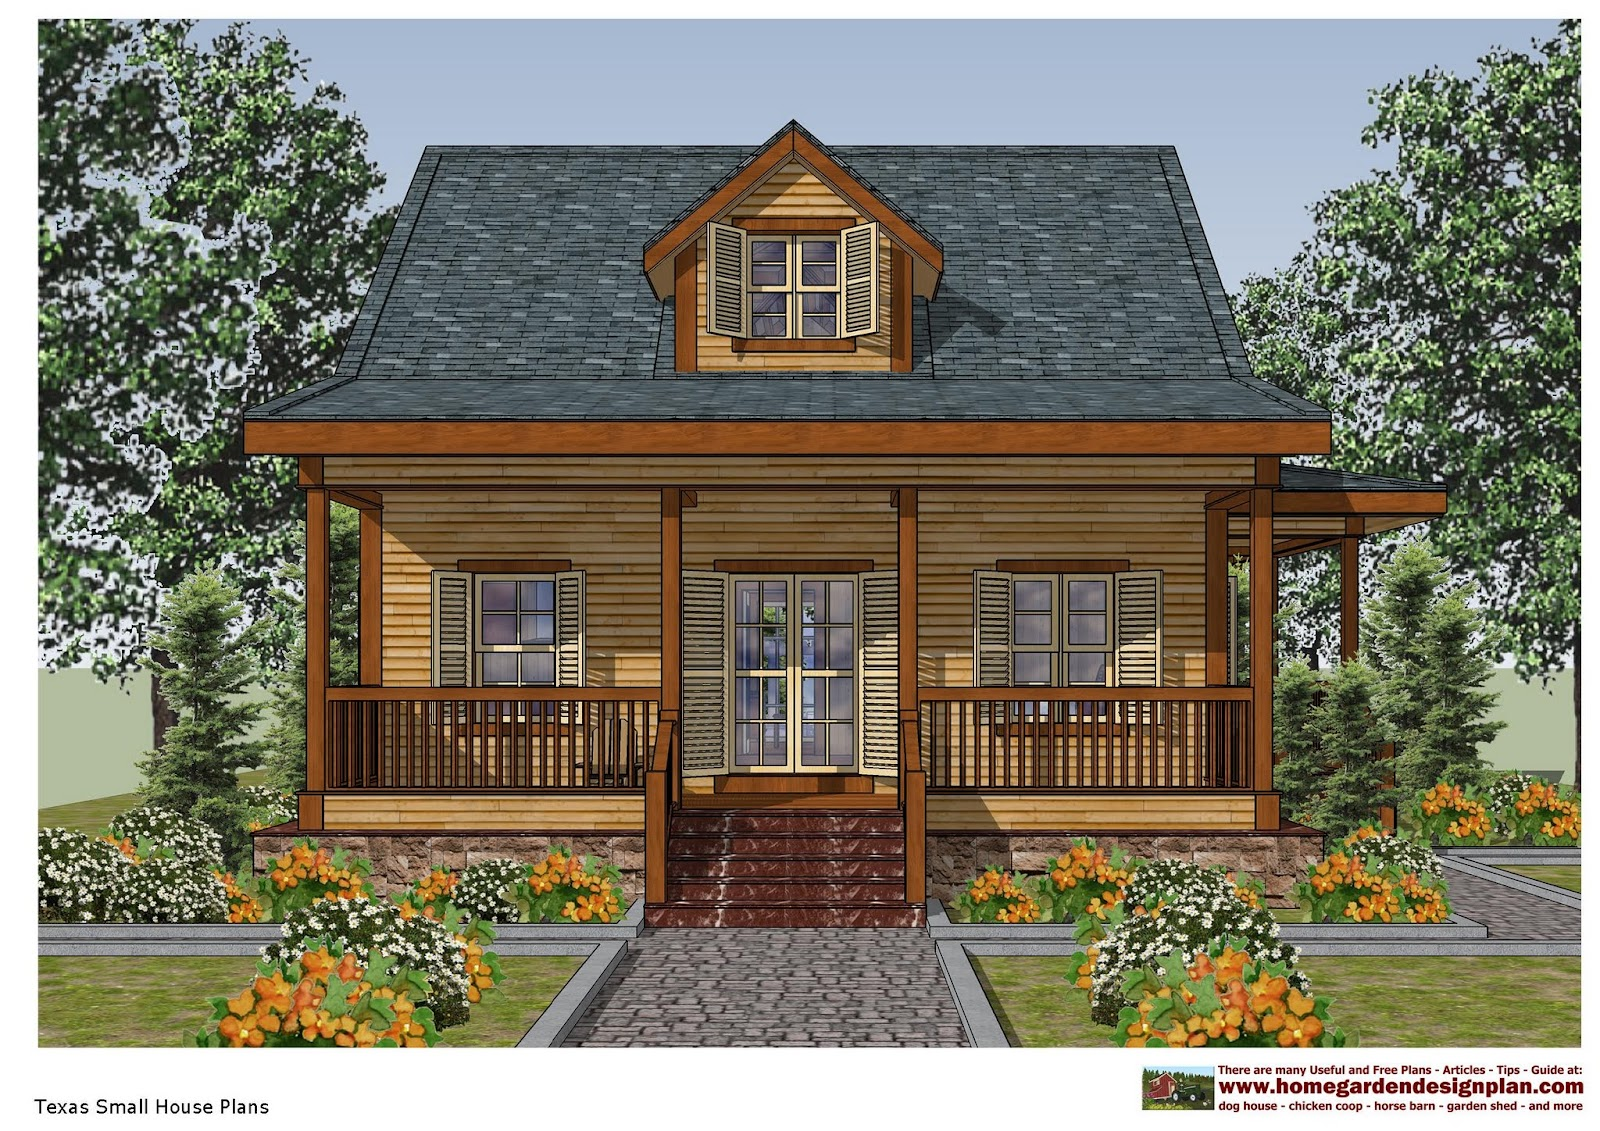 Home garden plans sh100 small house plans small house for Small house plans texas